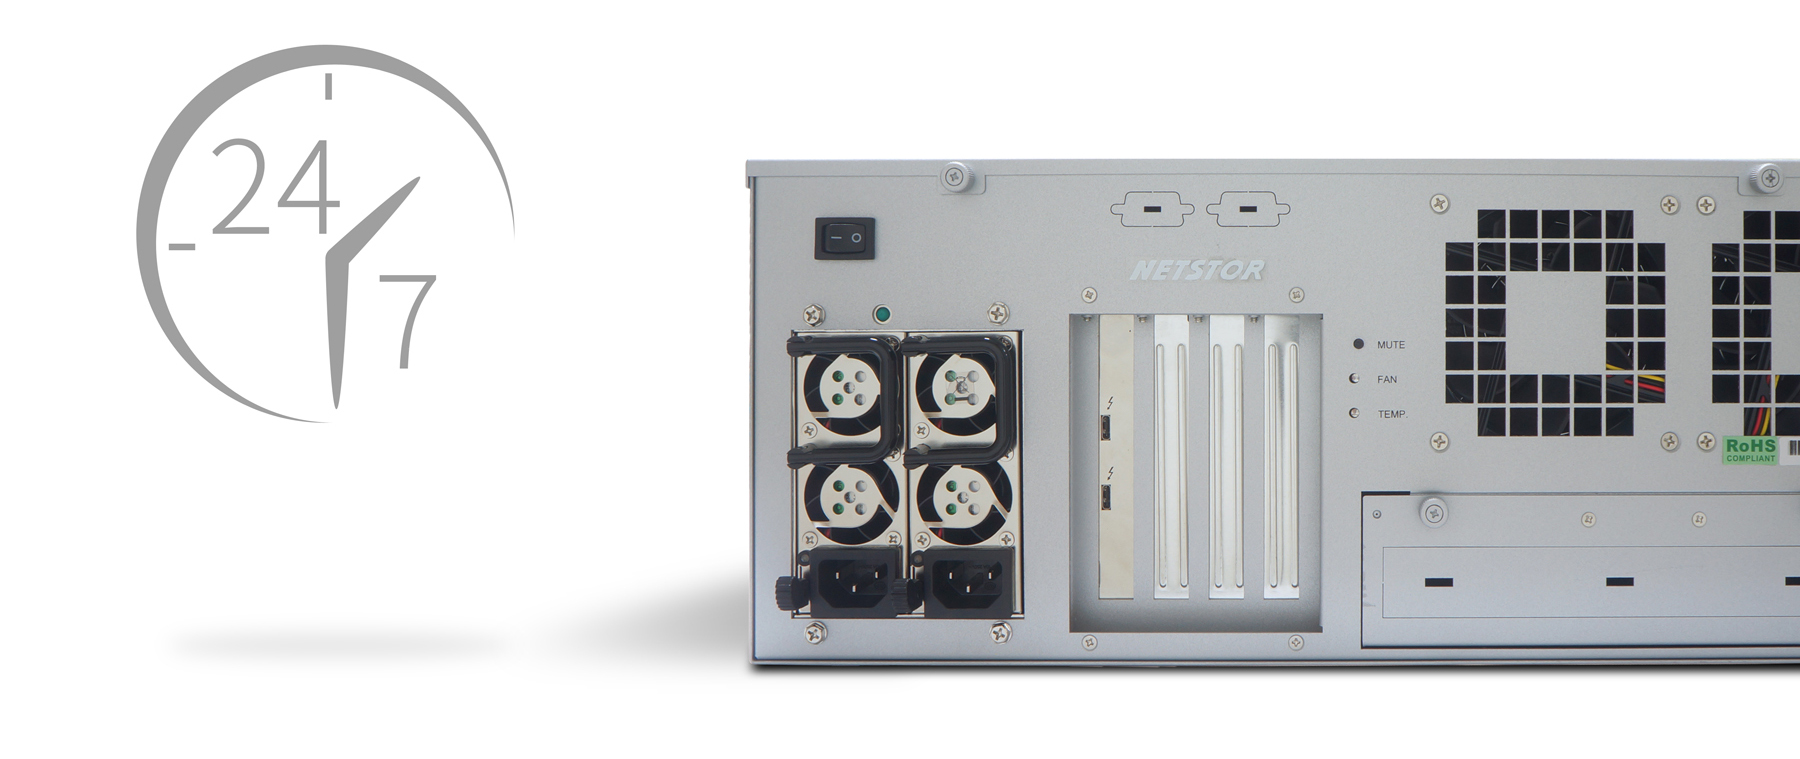 NA381TB3 will run 24/7 with no system downtime since the built-in server-grade 650W redundant PSU